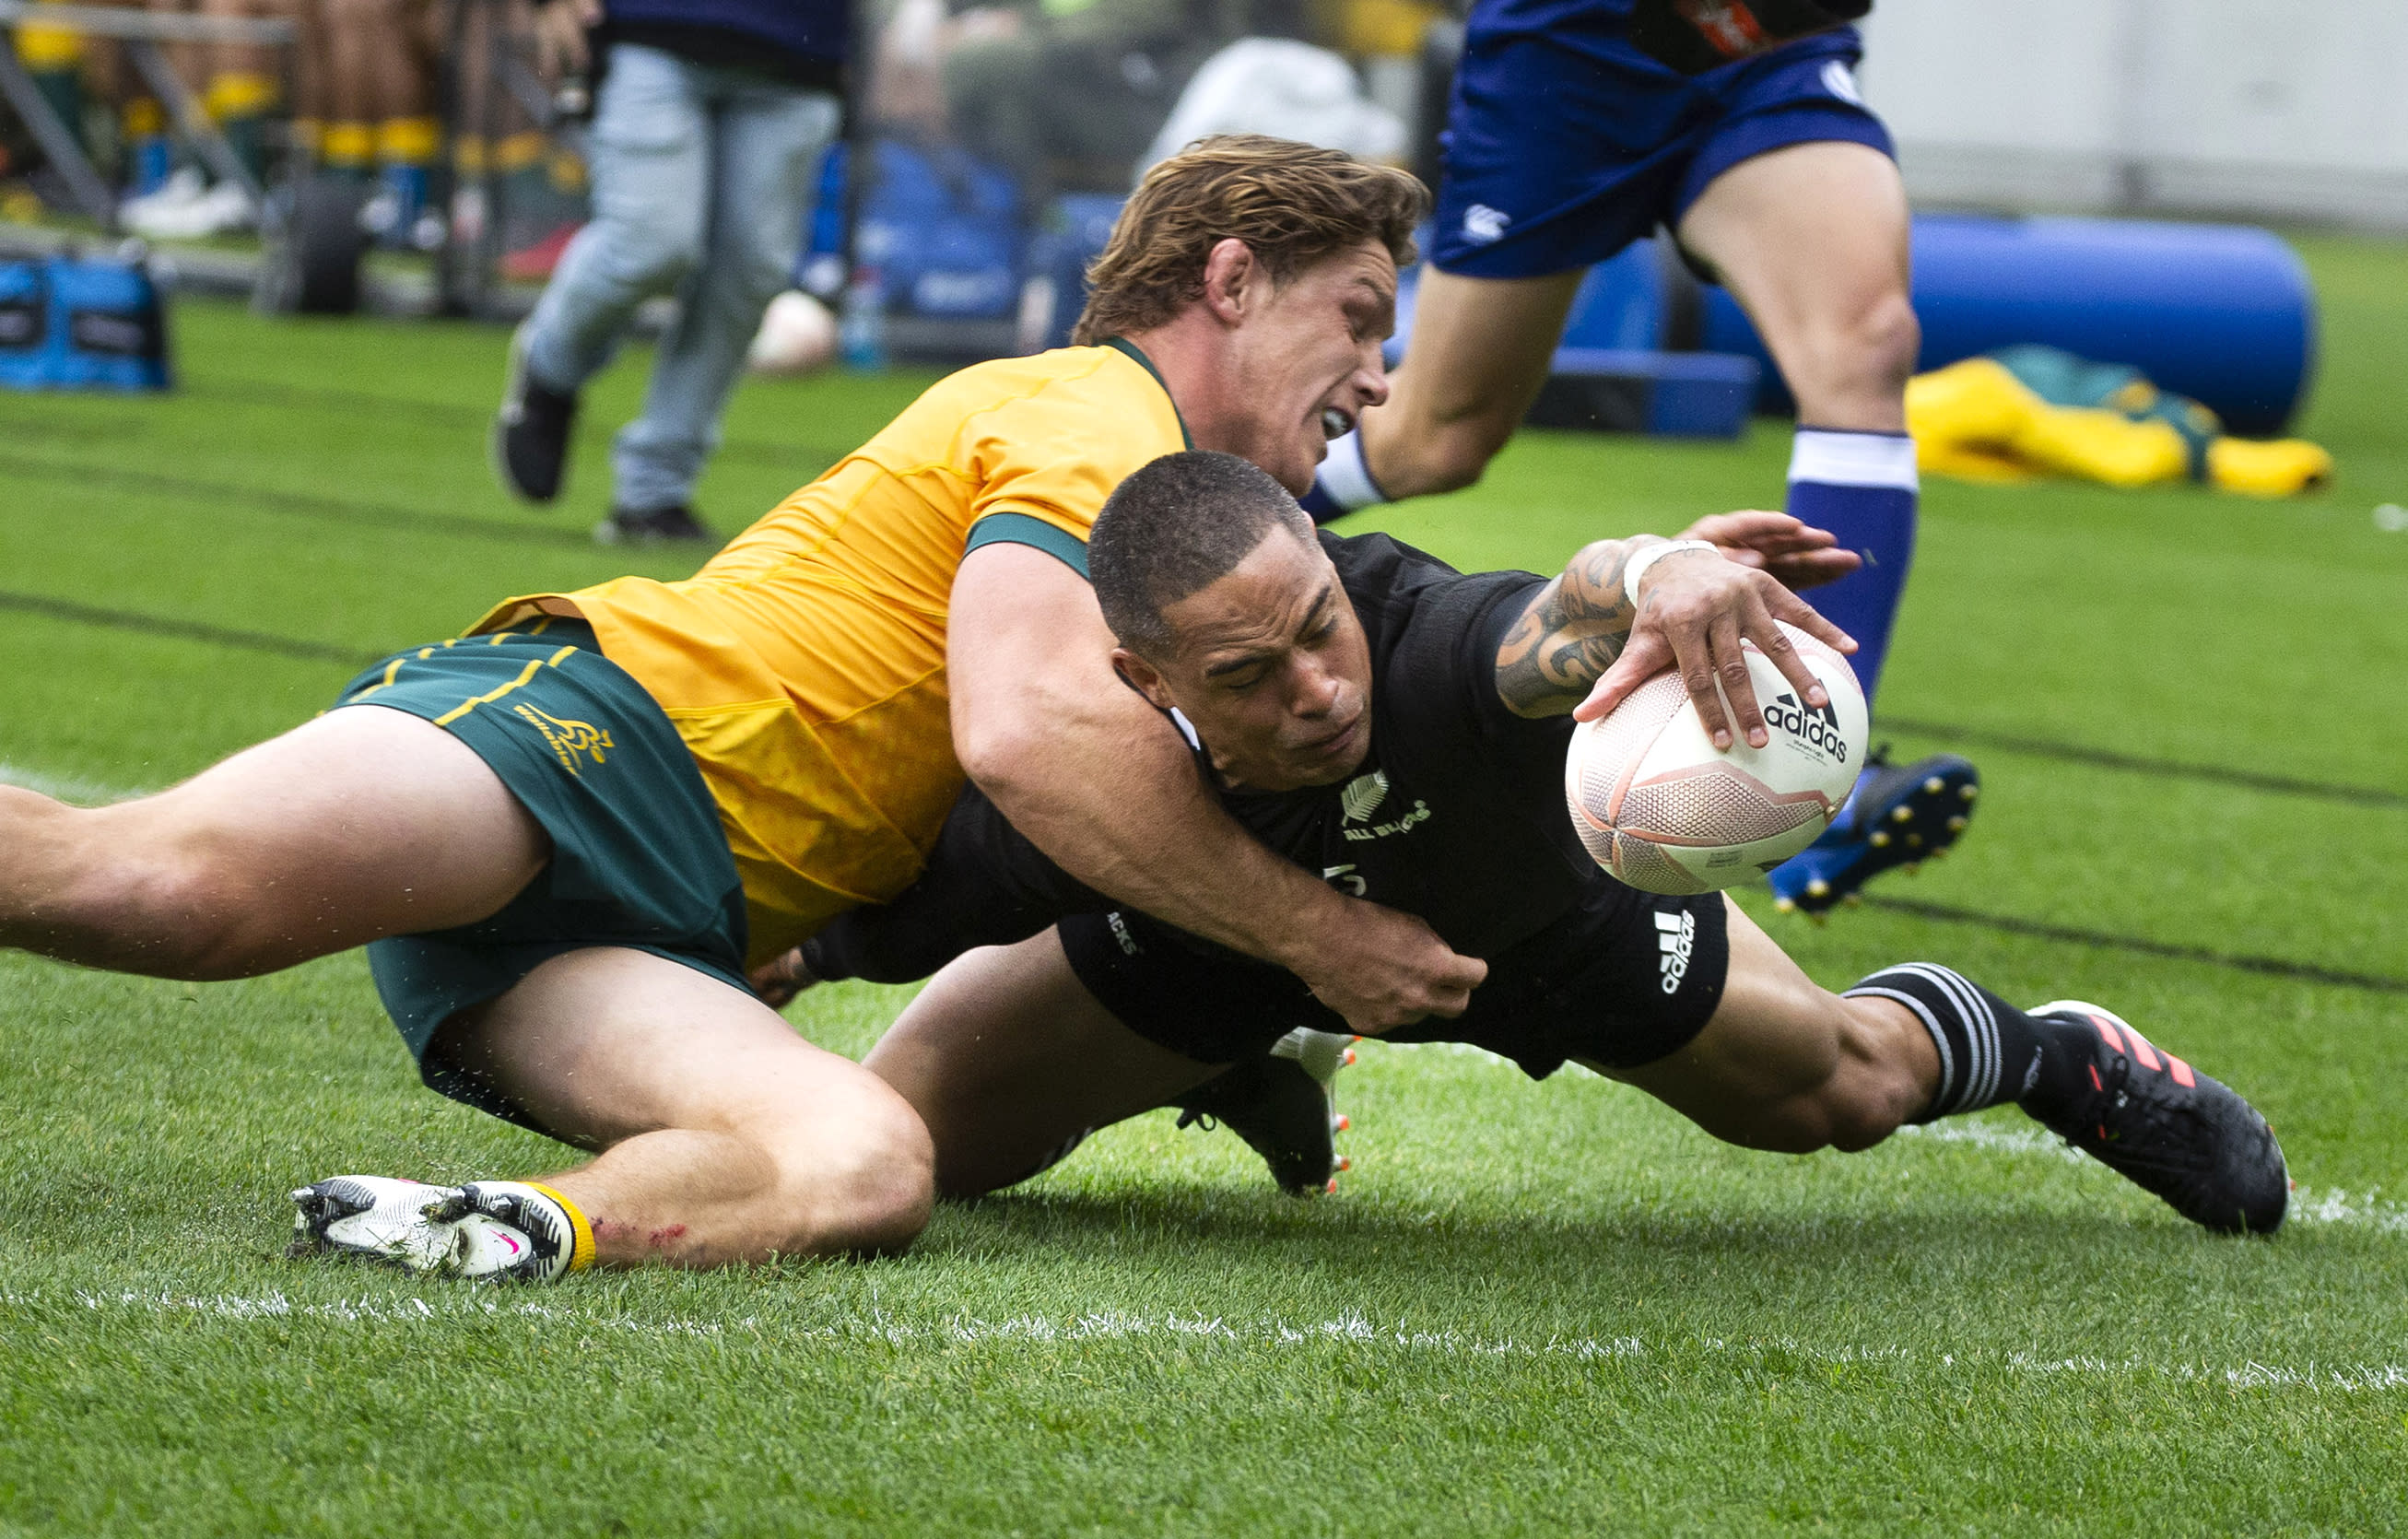 New Zealand's Aaron Smith scores a try in the tackle of Australia's Michael Hooper during the Bledisloe Cup rugby game between the All Blacks and the Wallabies in Wellington, New Zealand, Sunday, Oct.11, 2020. (Brett Phibbs/Photosport via AP)